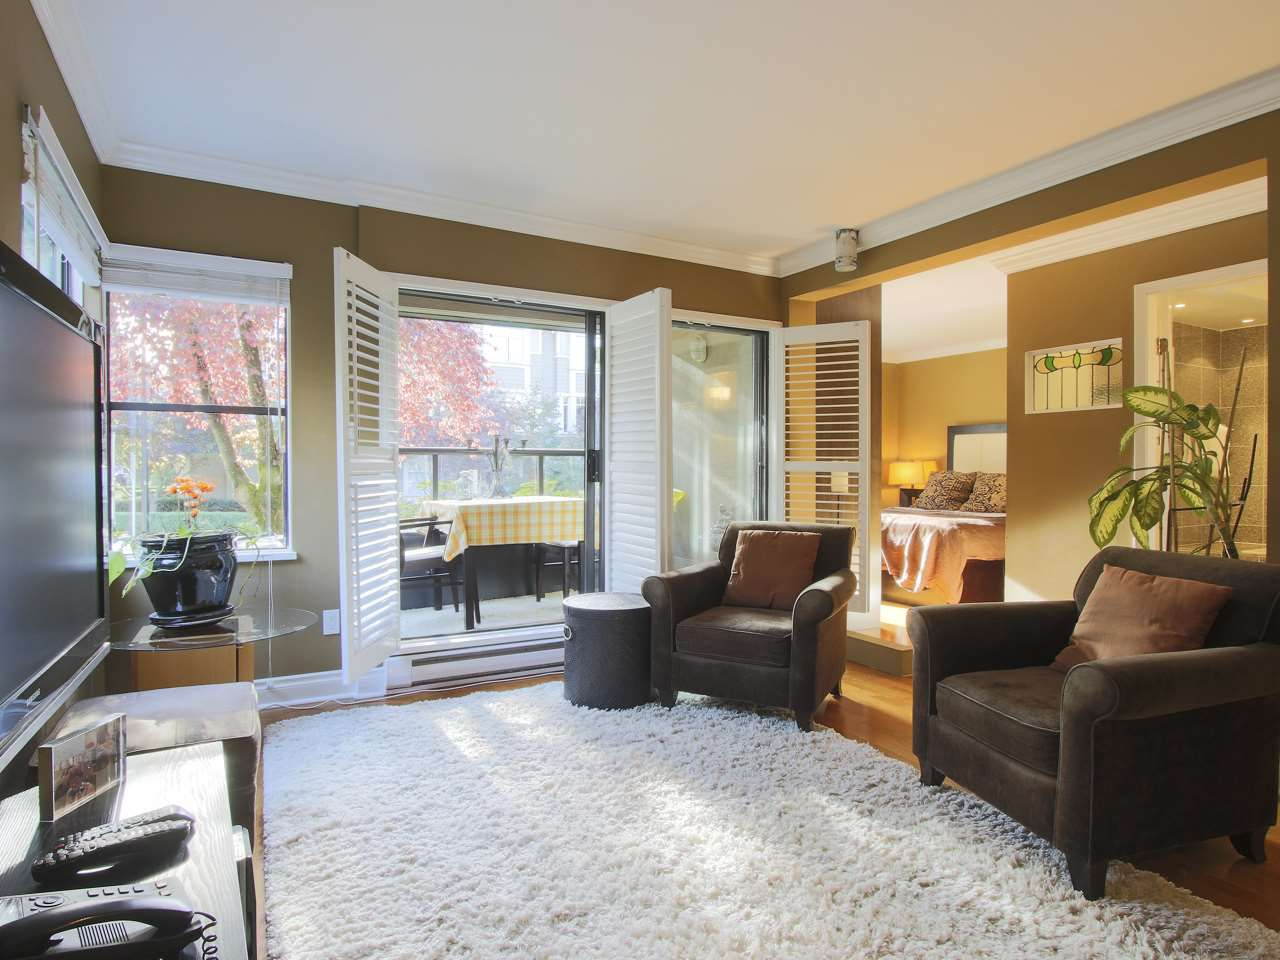 Main Photo: 3 1053 NICOLA STREET in : West End VW Condo for sale : MLS®# R2009954